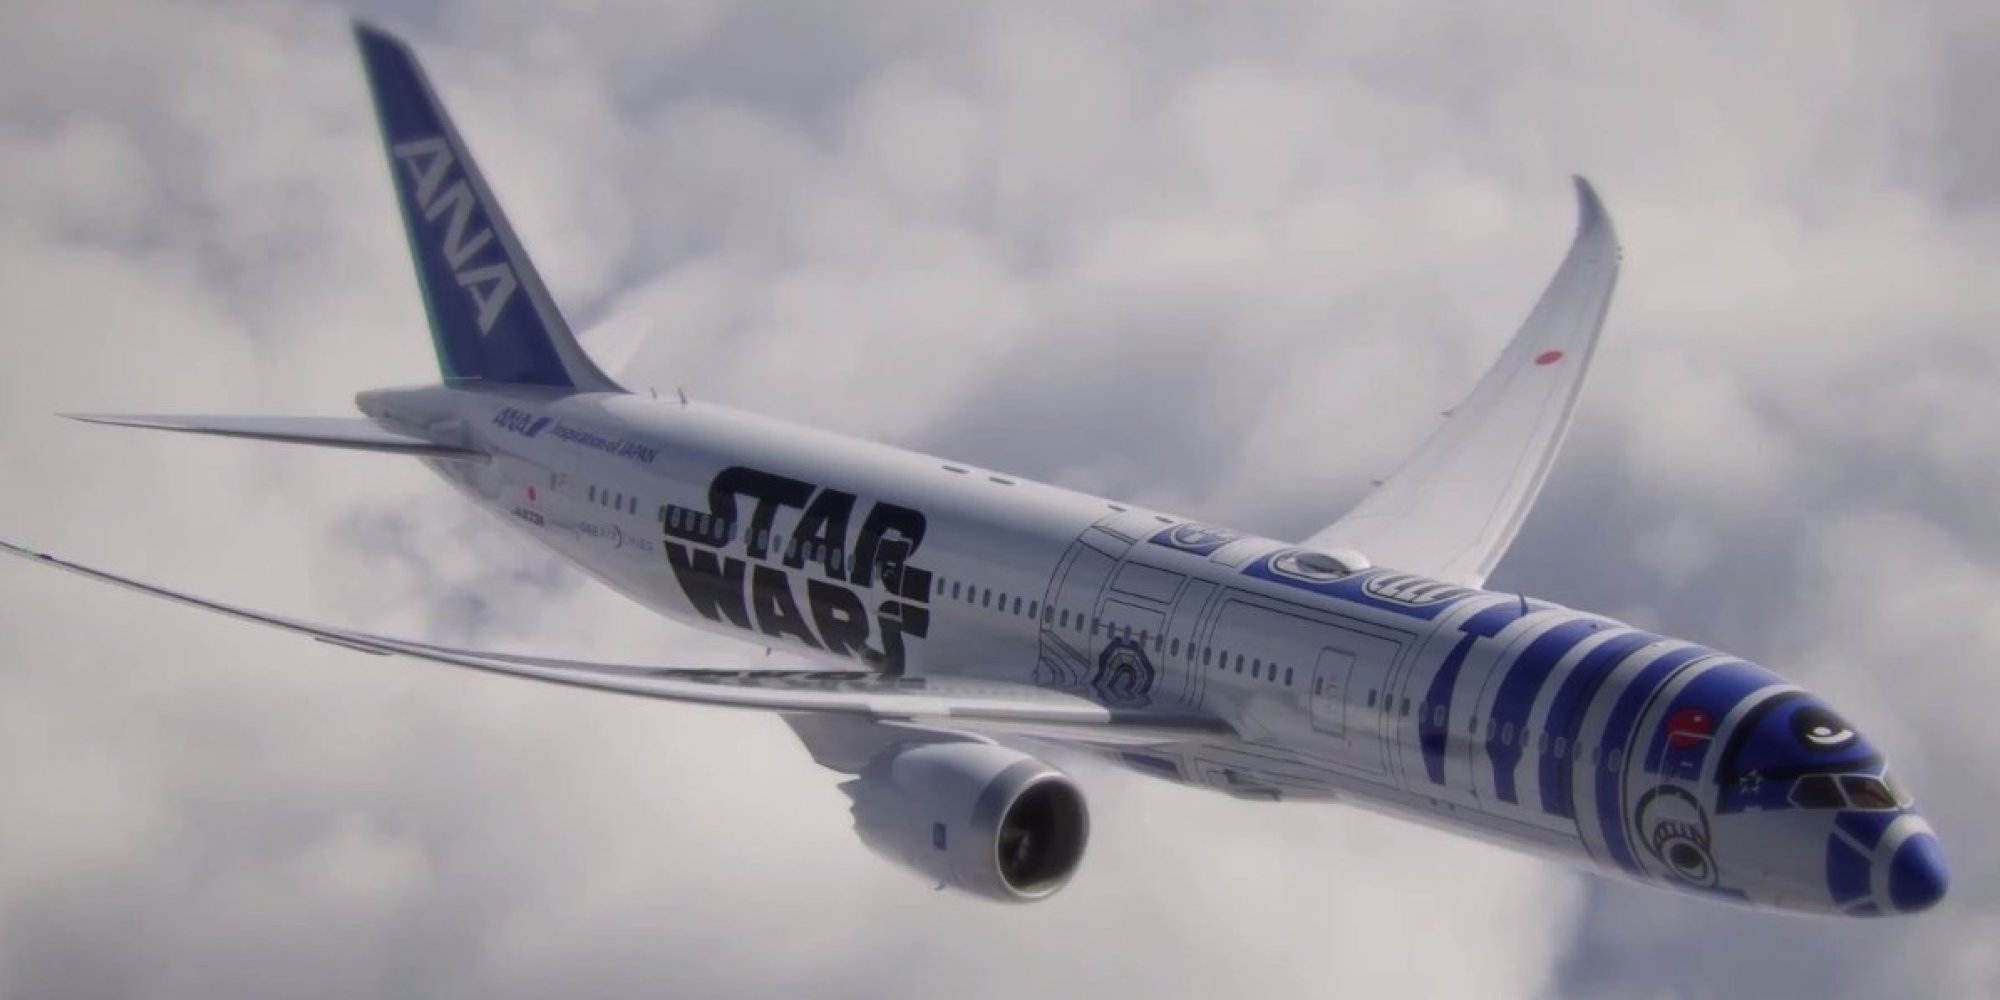 o-R2D2-STAR-WARS-PLANE-facebook